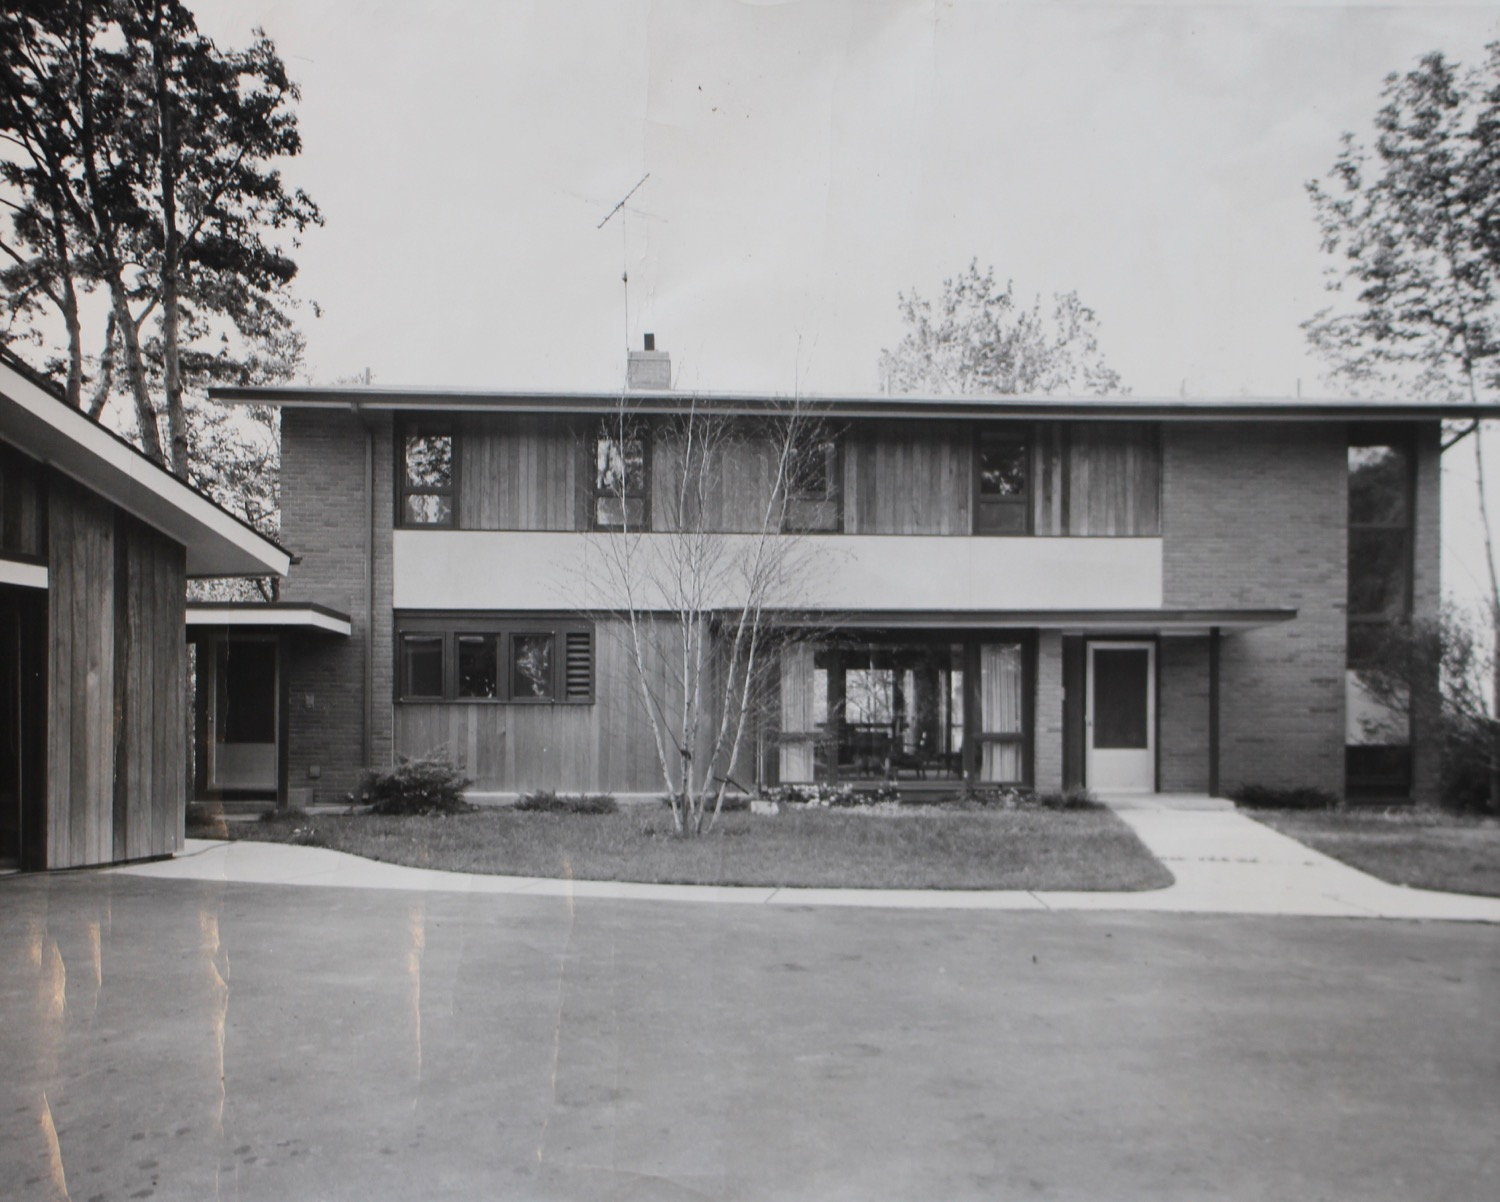 Dr. Swanson House, Exterior.  Slide  taken at time of construction from Firant Family archives.